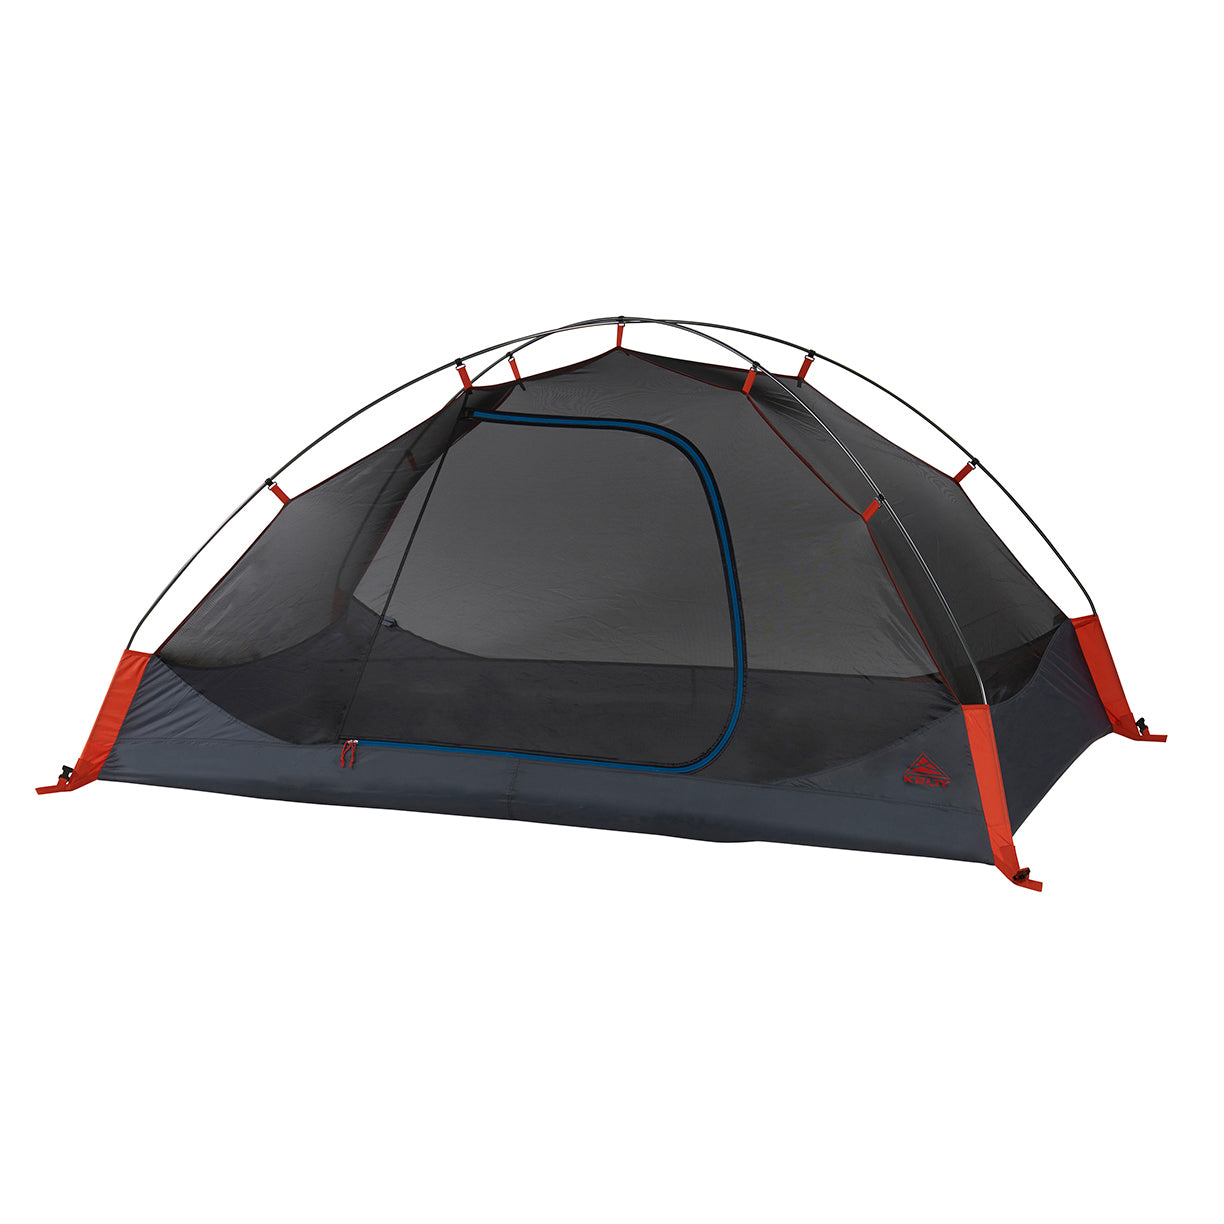 kelty late start 2 person tent no fly front view in color dark grey with blue and orange accents